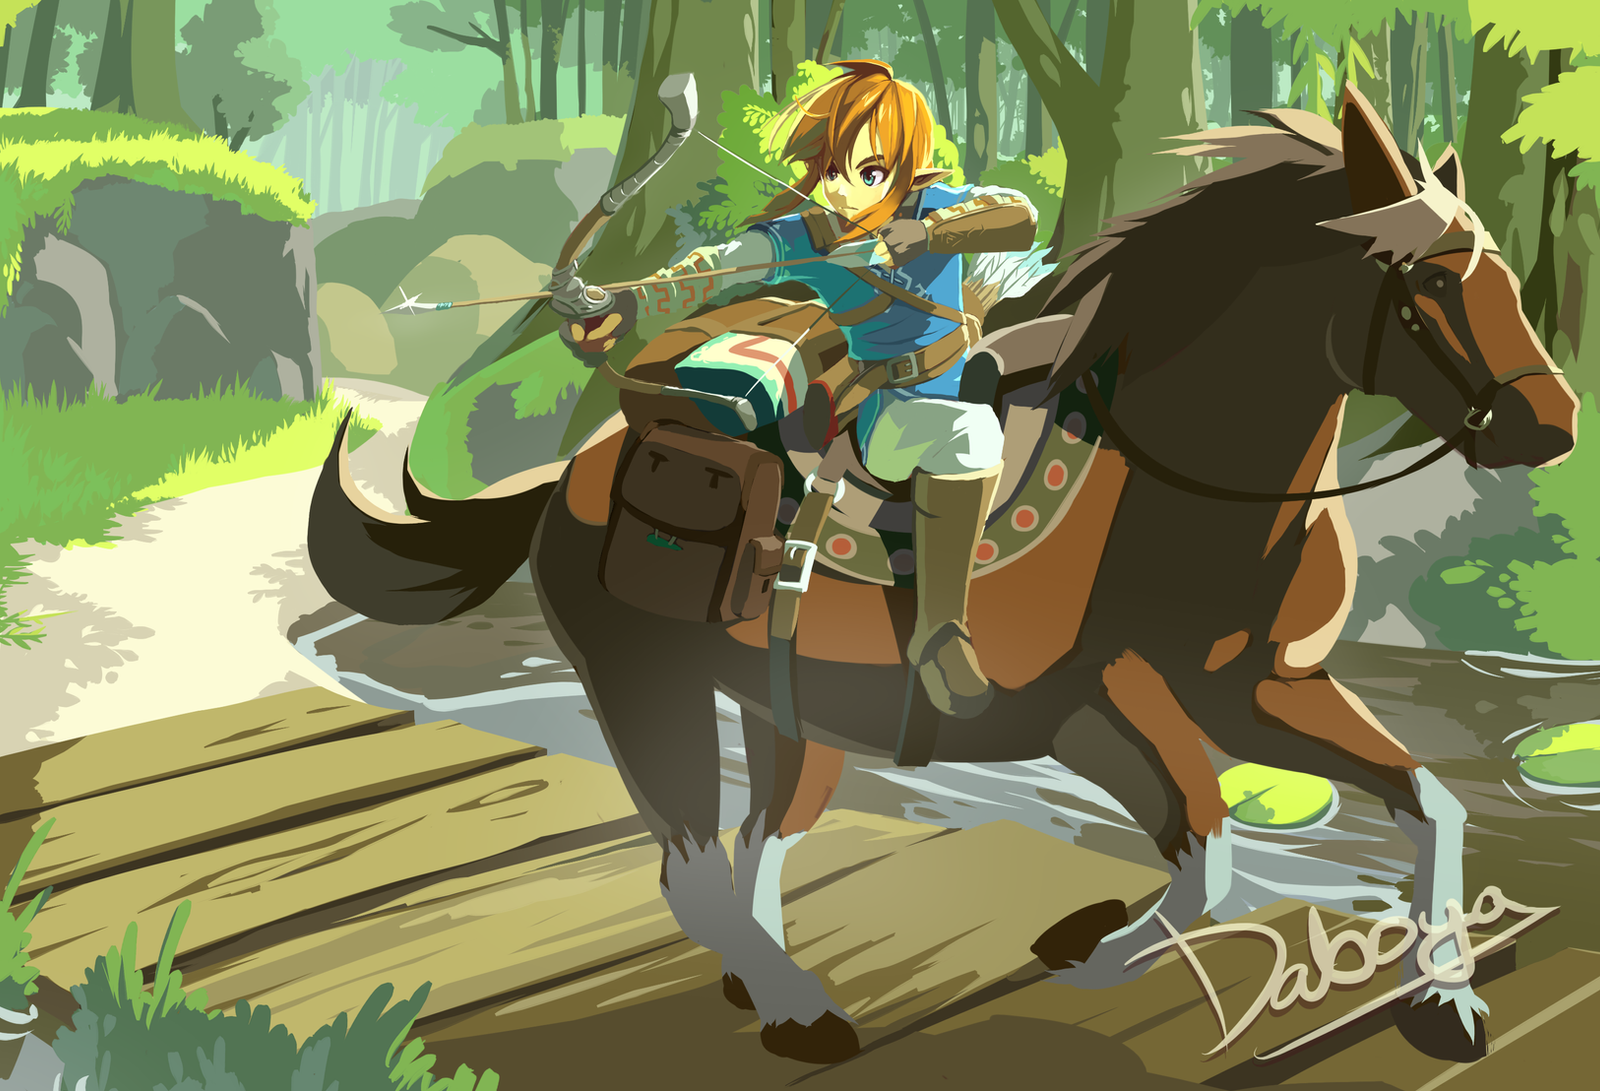 Zelda Wii U By Daboya On Deviantart